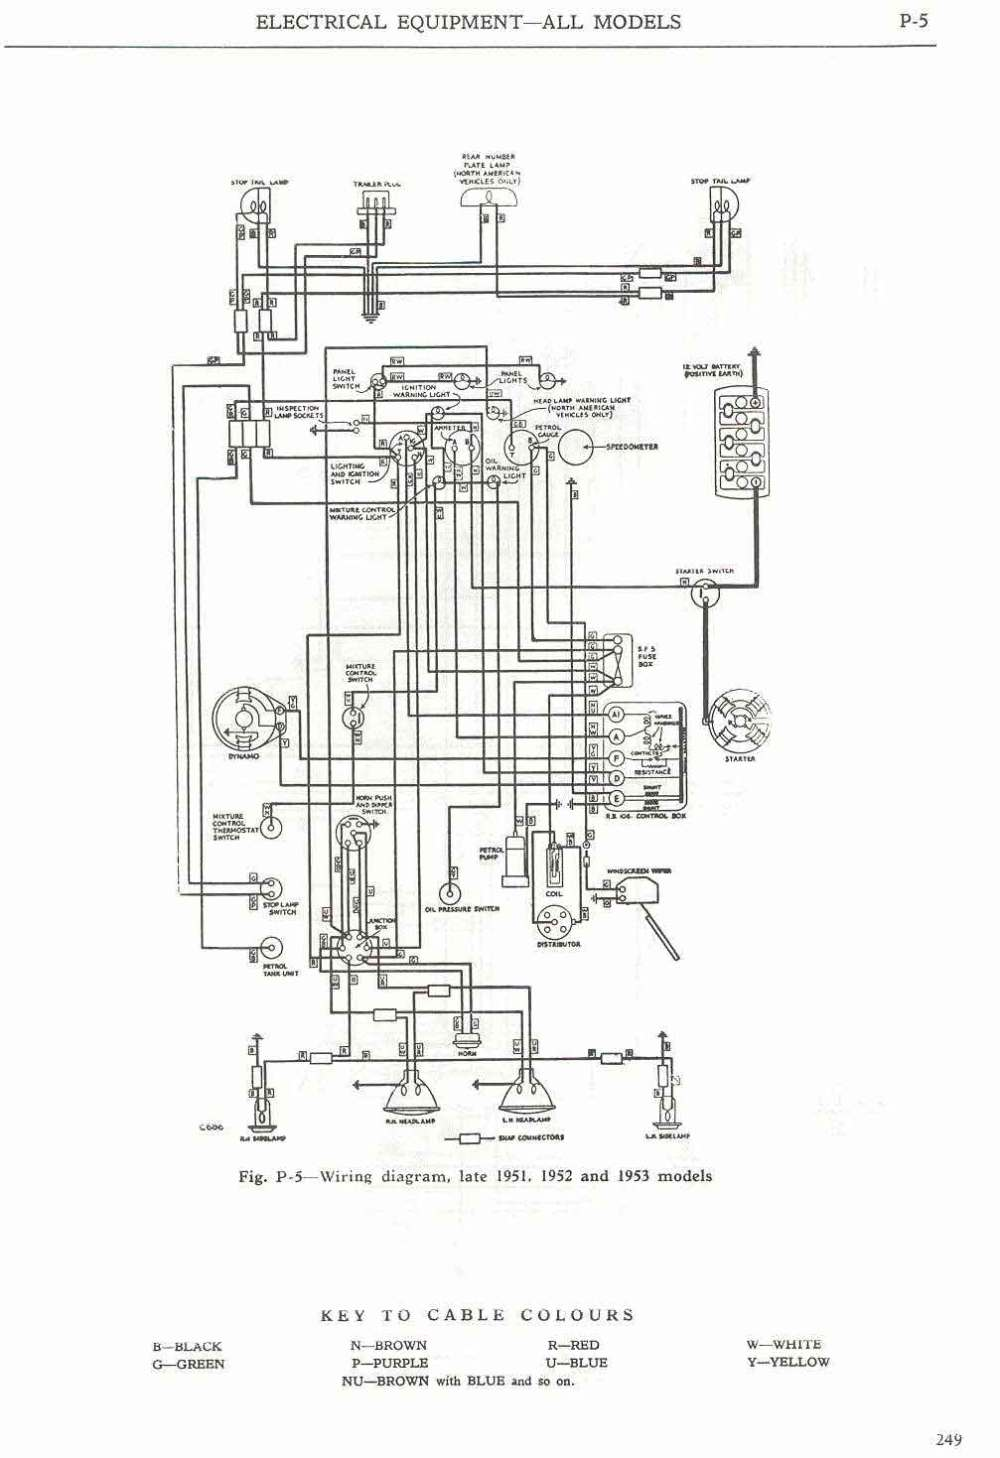 medium resolution of  wiring diagram late 1951 and 1952 1953 models